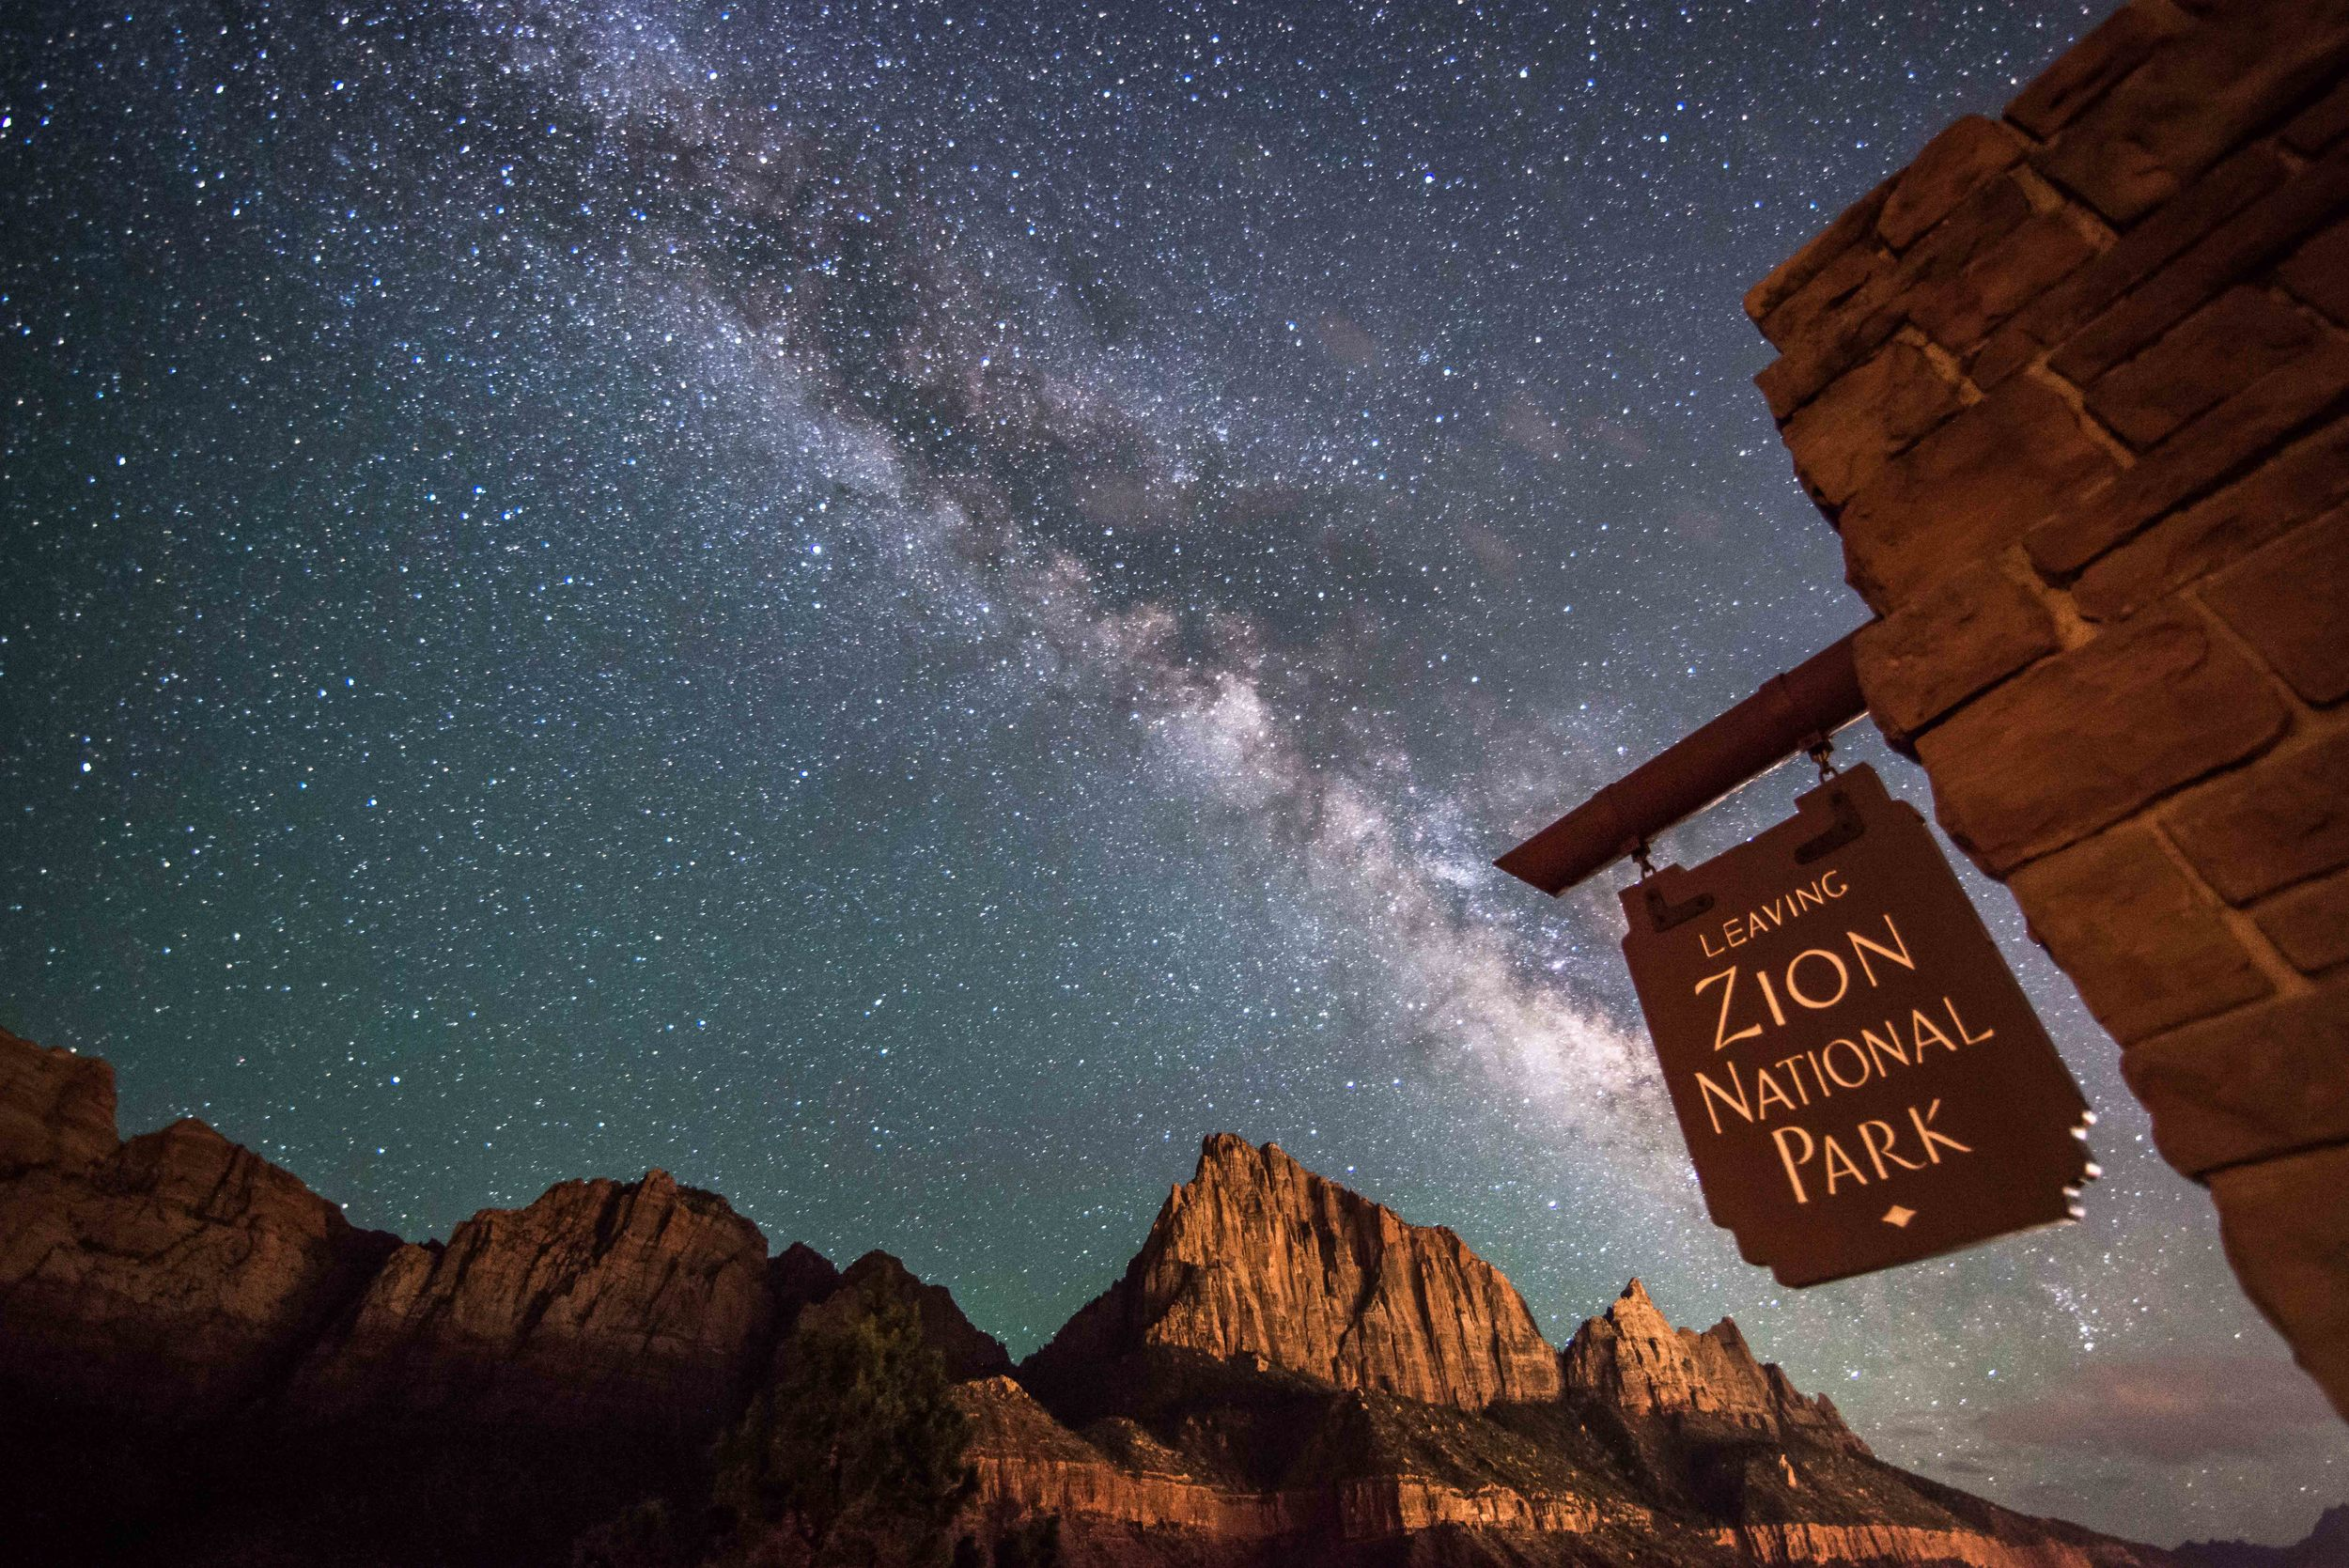 Zion National Park Welcome Sign with Milky Way